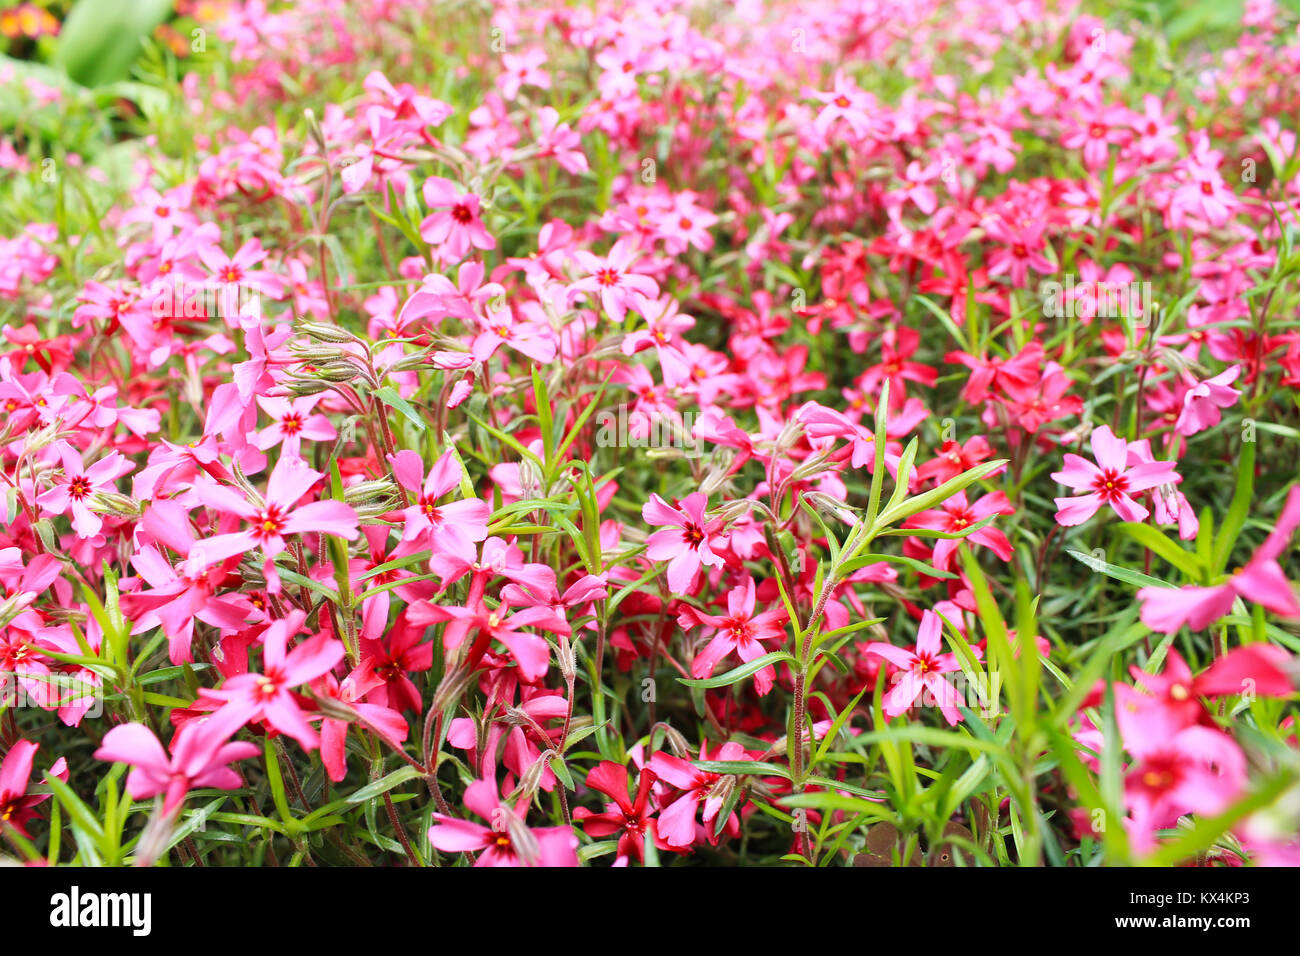 blurred background of small pink flowers with leaves - Stock Image